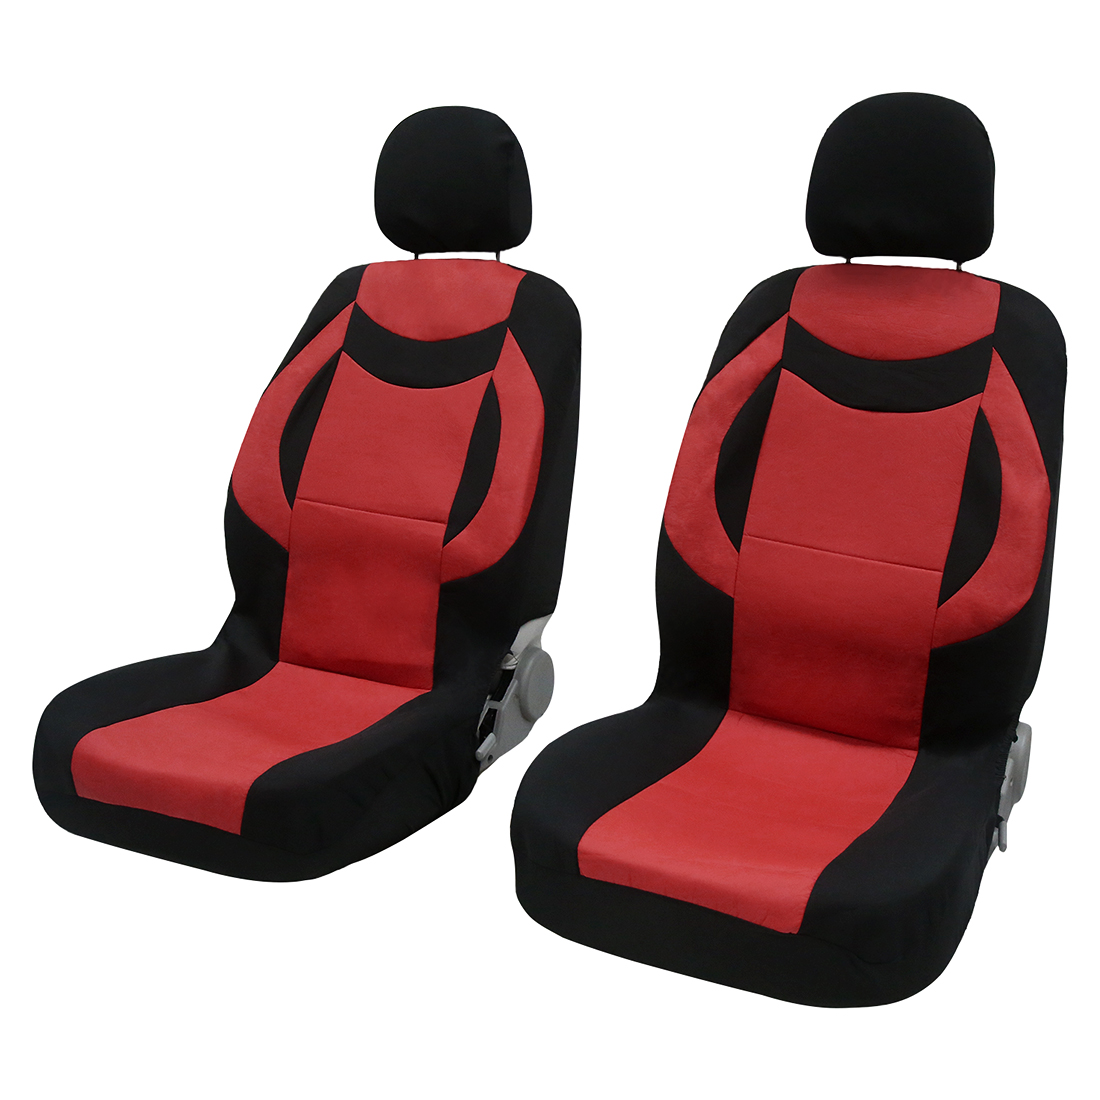 8pcs PU Leather Auto Interior Accessories Car Seat Covers full set Red